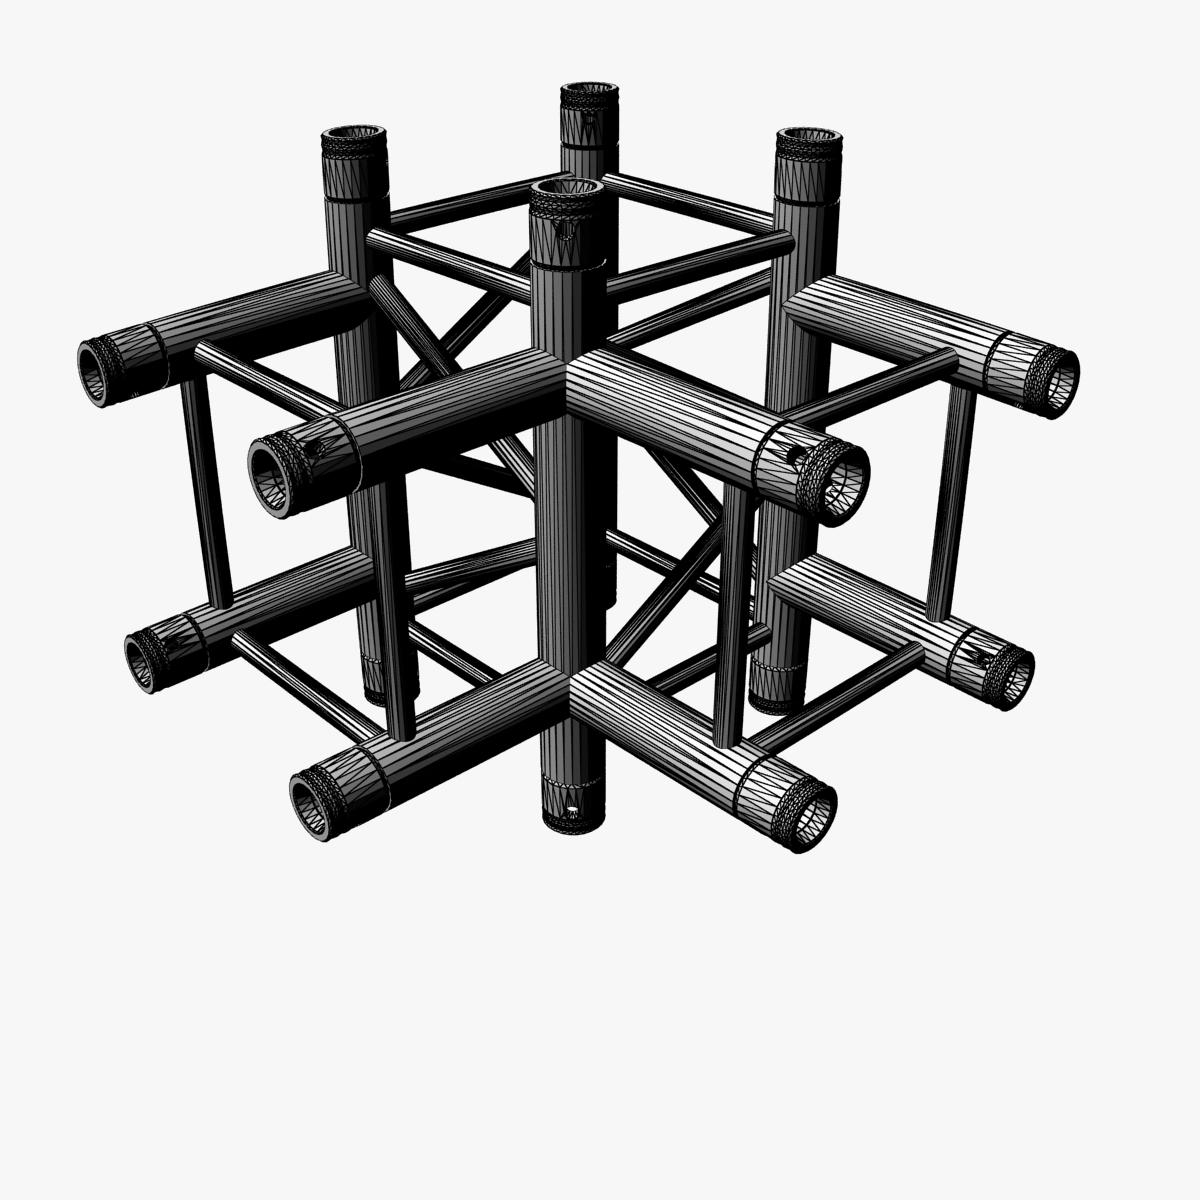 square truss standard (collection 24 modular) 3d model 3ds max dxf fbx c4d dae  texture obj 216367